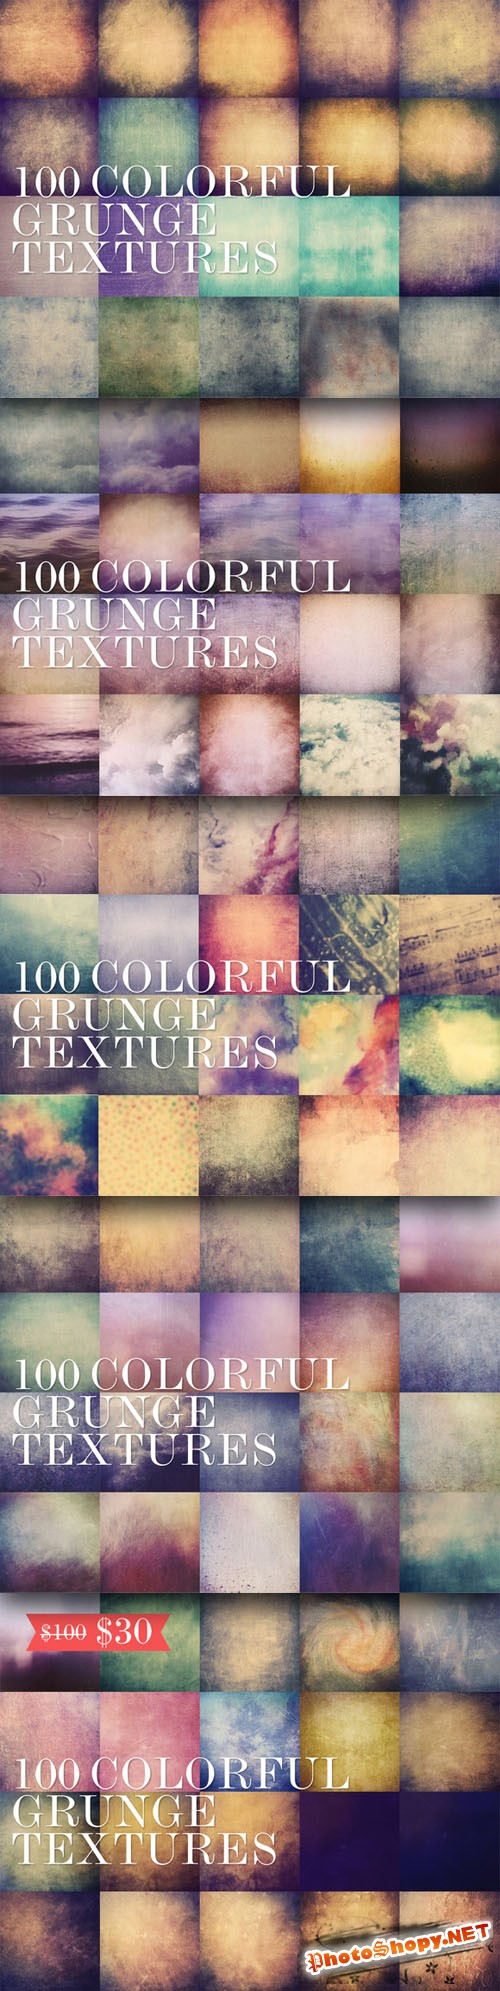 CreativeMarket - 100 Colorful Grunge Textures 5000px